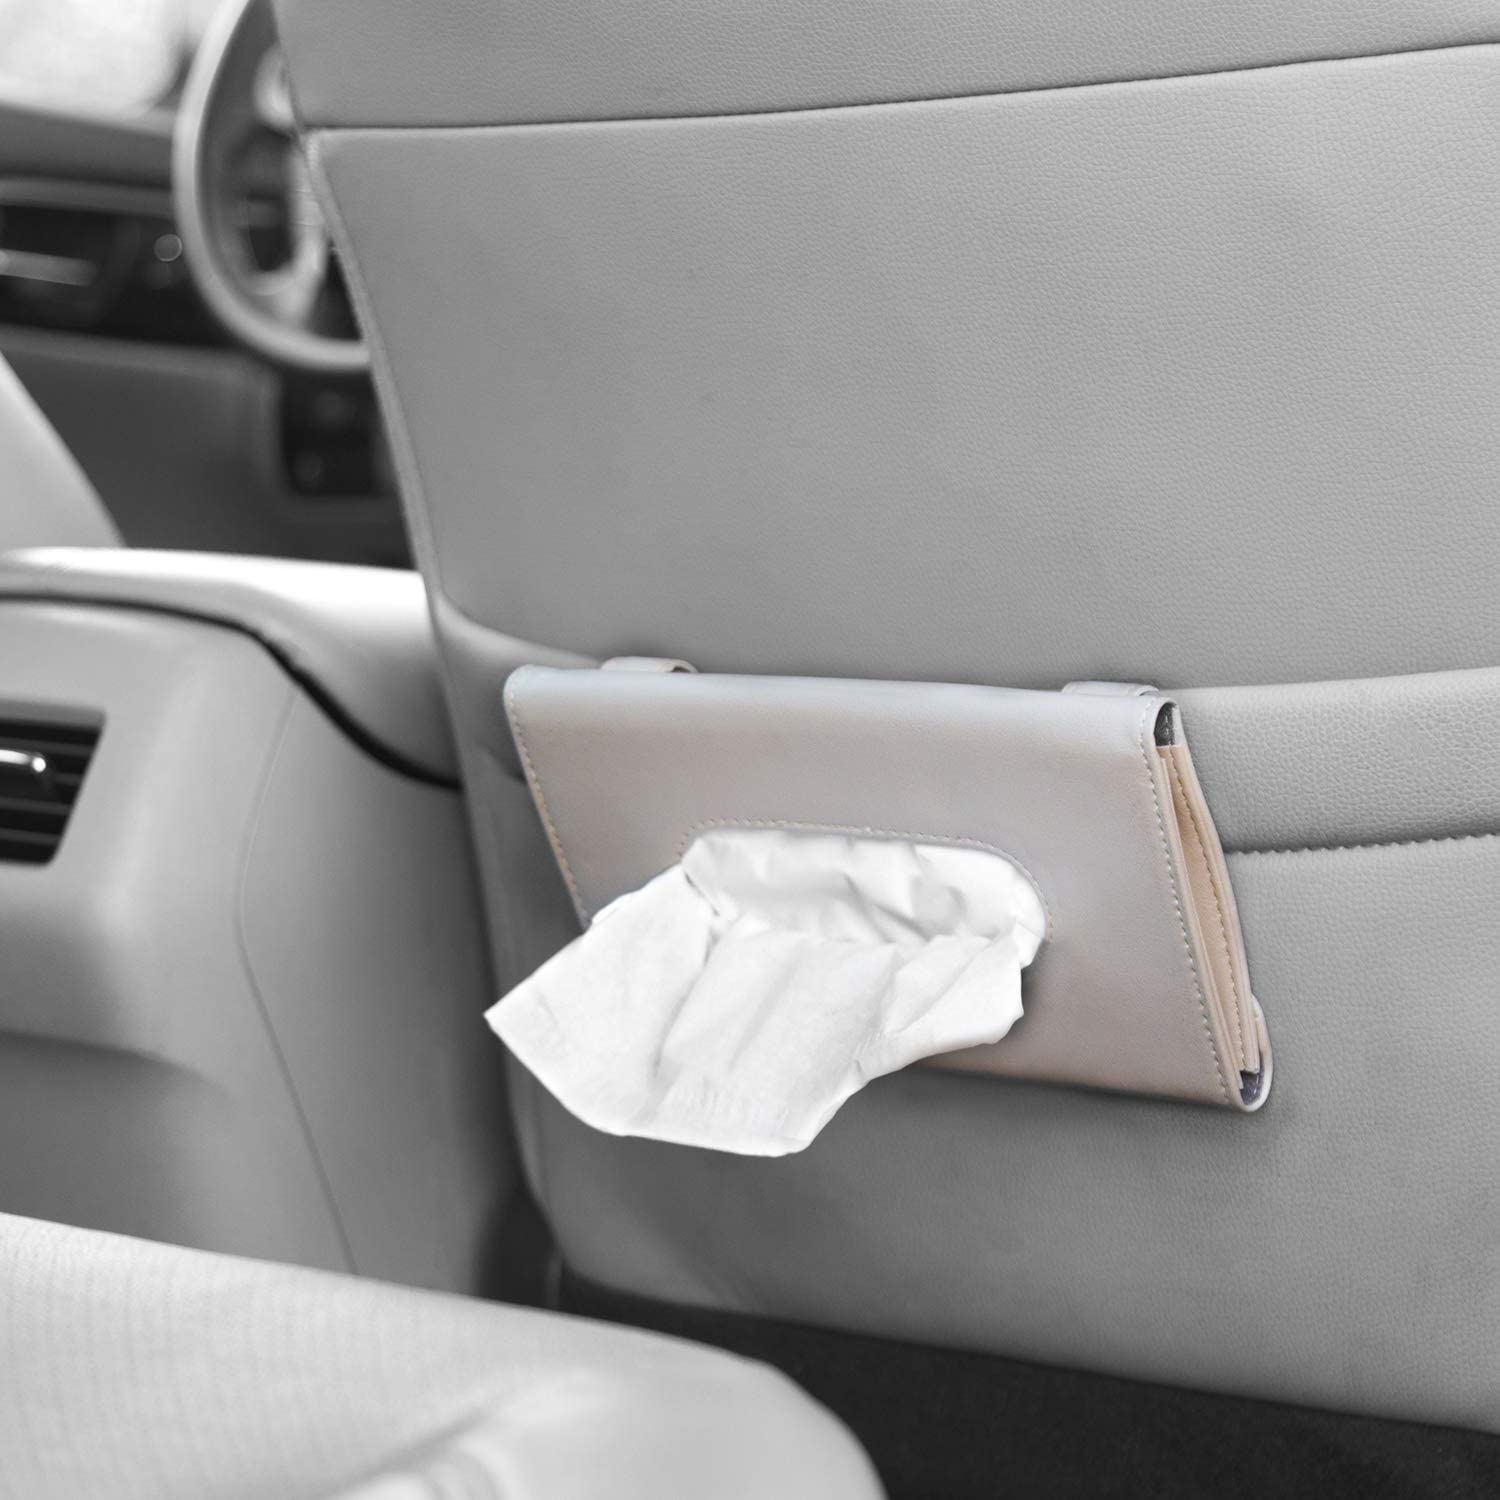 Bonus Pack of Napkins Included lebogner Car Sun Visor Tissue Holder Interior Accessories Pouch for Wipes Beige PU Leather Tissue Dispenser Hanging Case to Clip On Your Car Door Or Back Seat Pocket